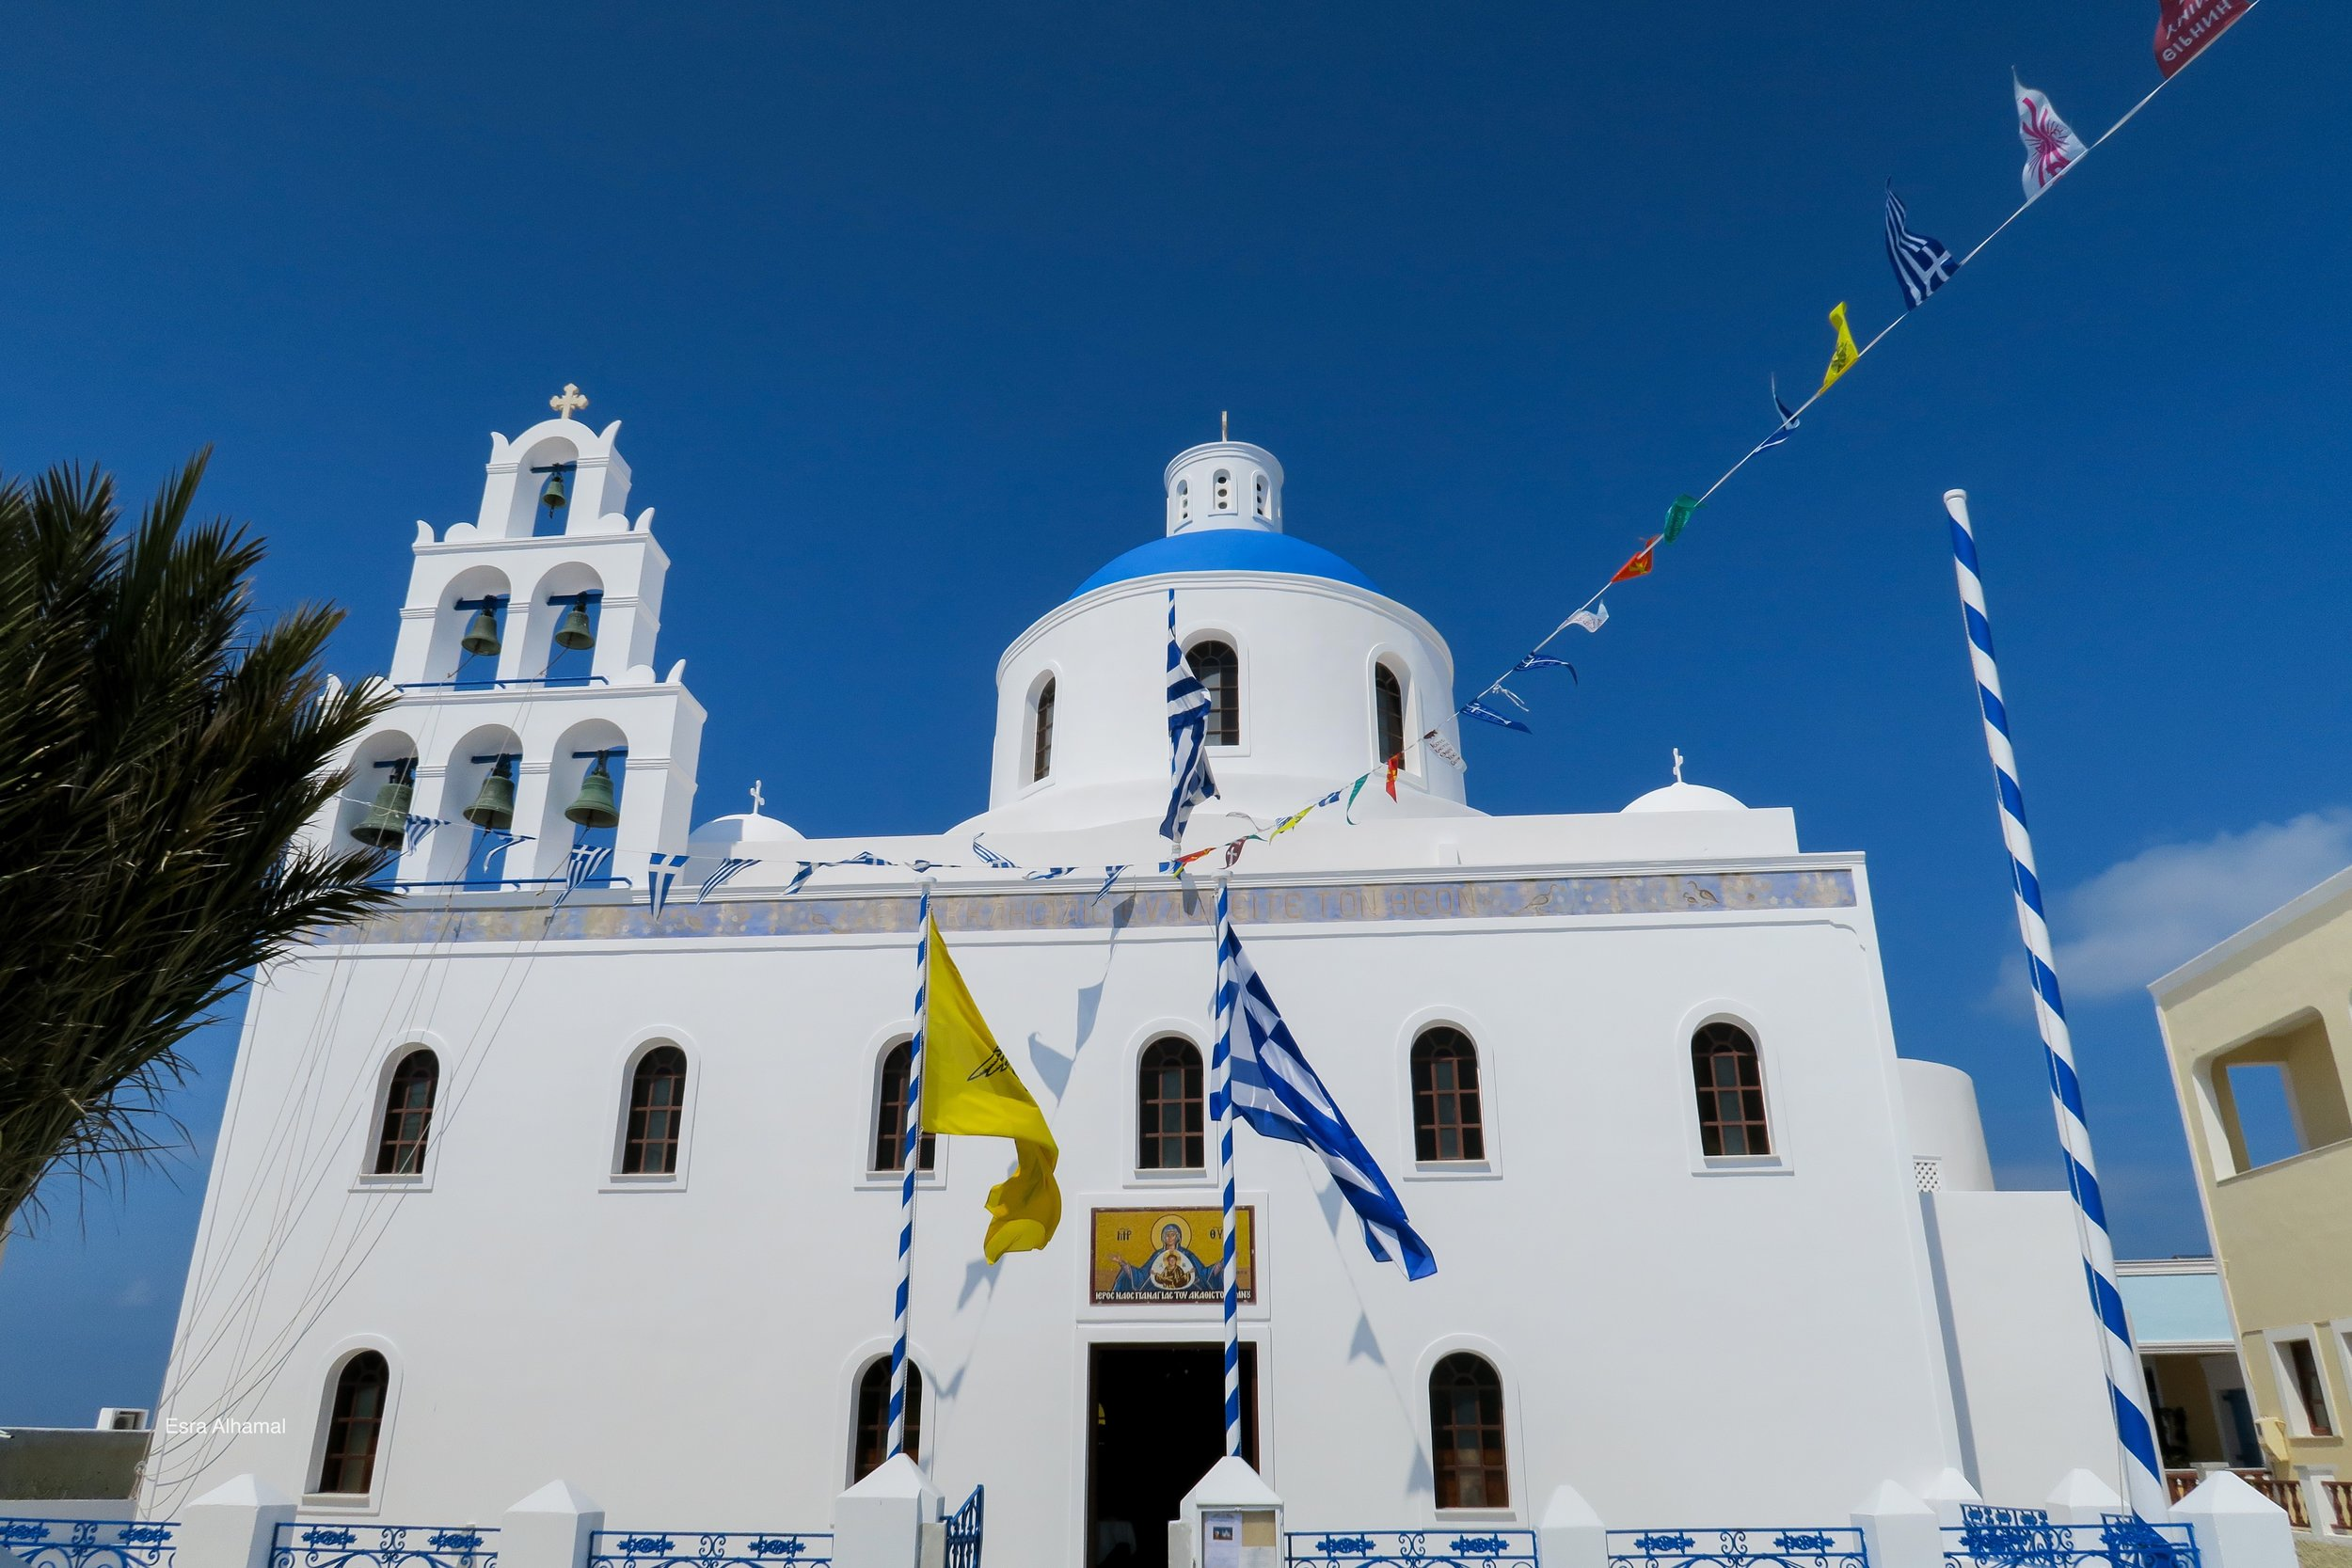 Church painted in white in Oia in Santorini